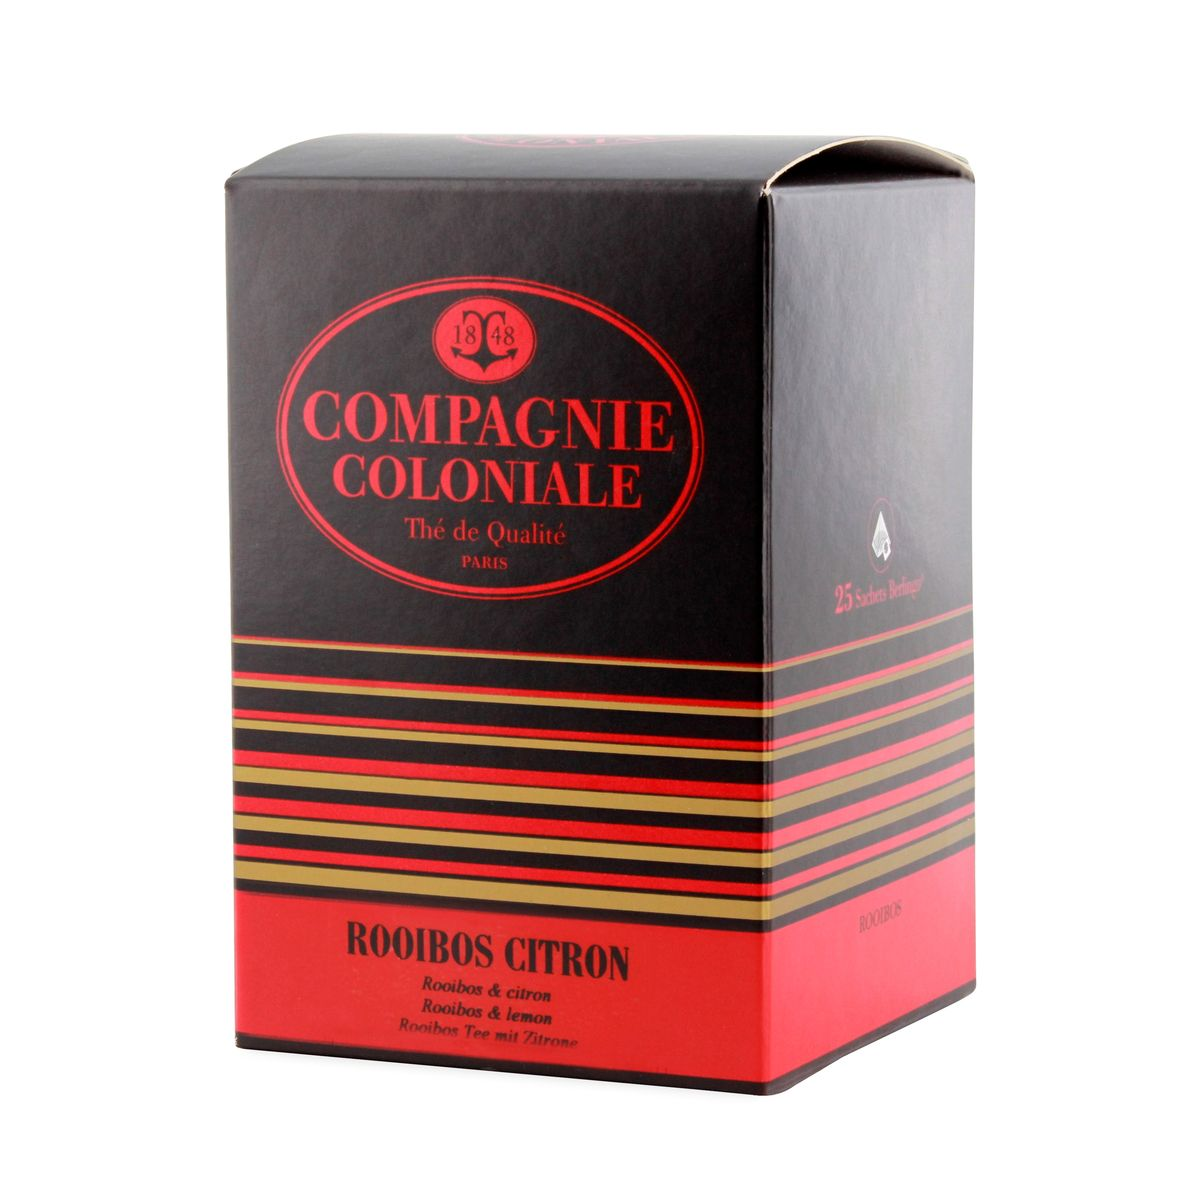 Rooibos citron sachets - Compagnie Coloniale